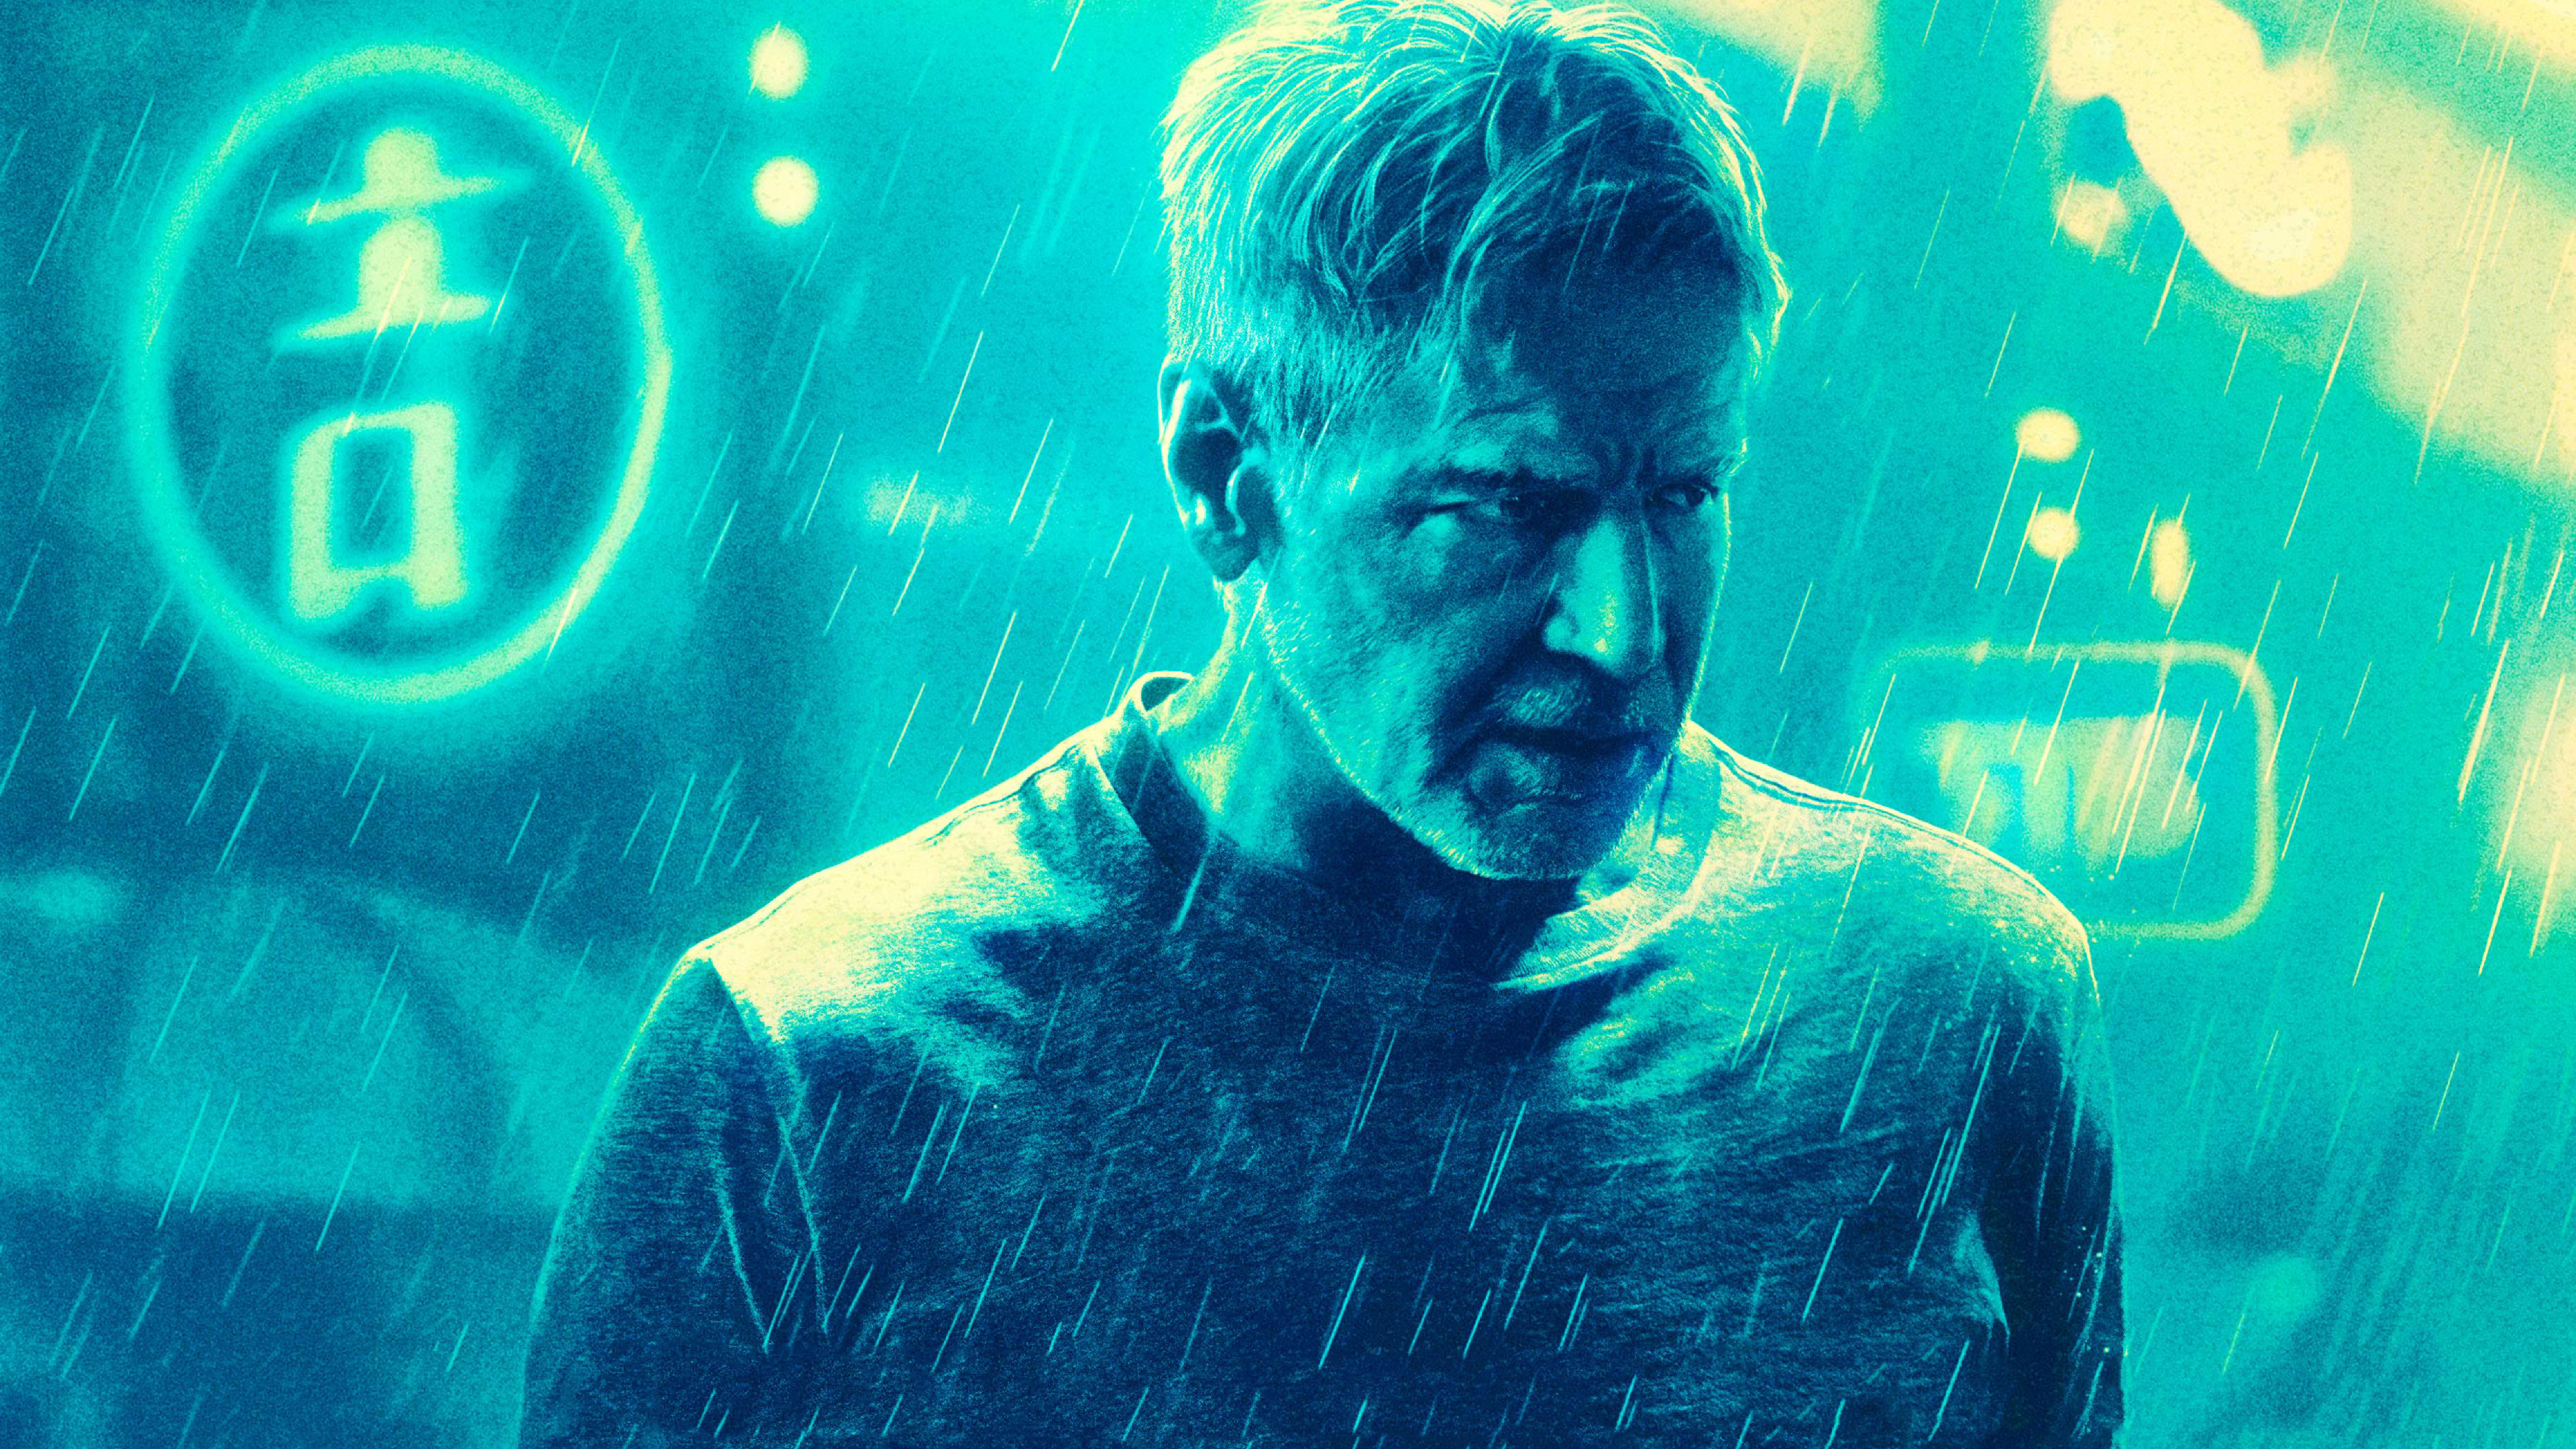 3840x2160 Harrison Ford Blade Runner 2049 4k Wallpaper Hd Movies